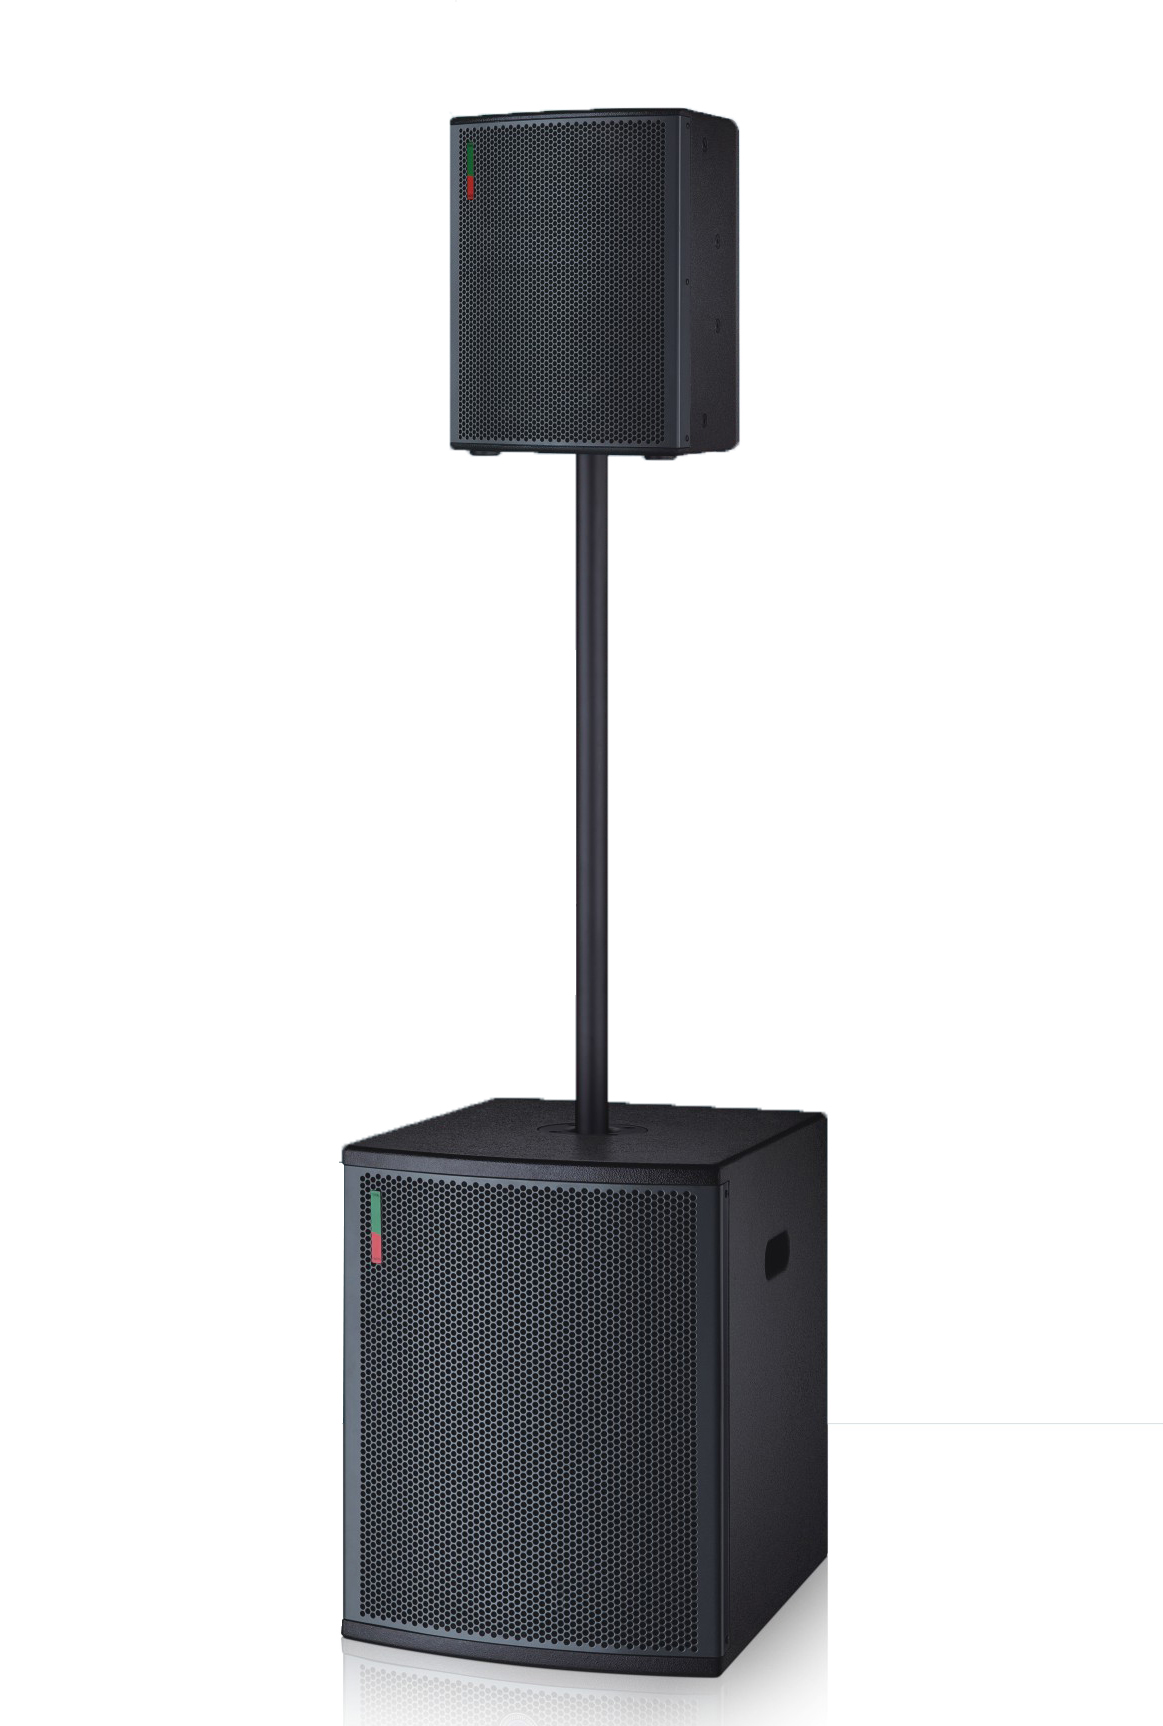 Professional Coaxial active dsp 3 channel subwoofer speaker